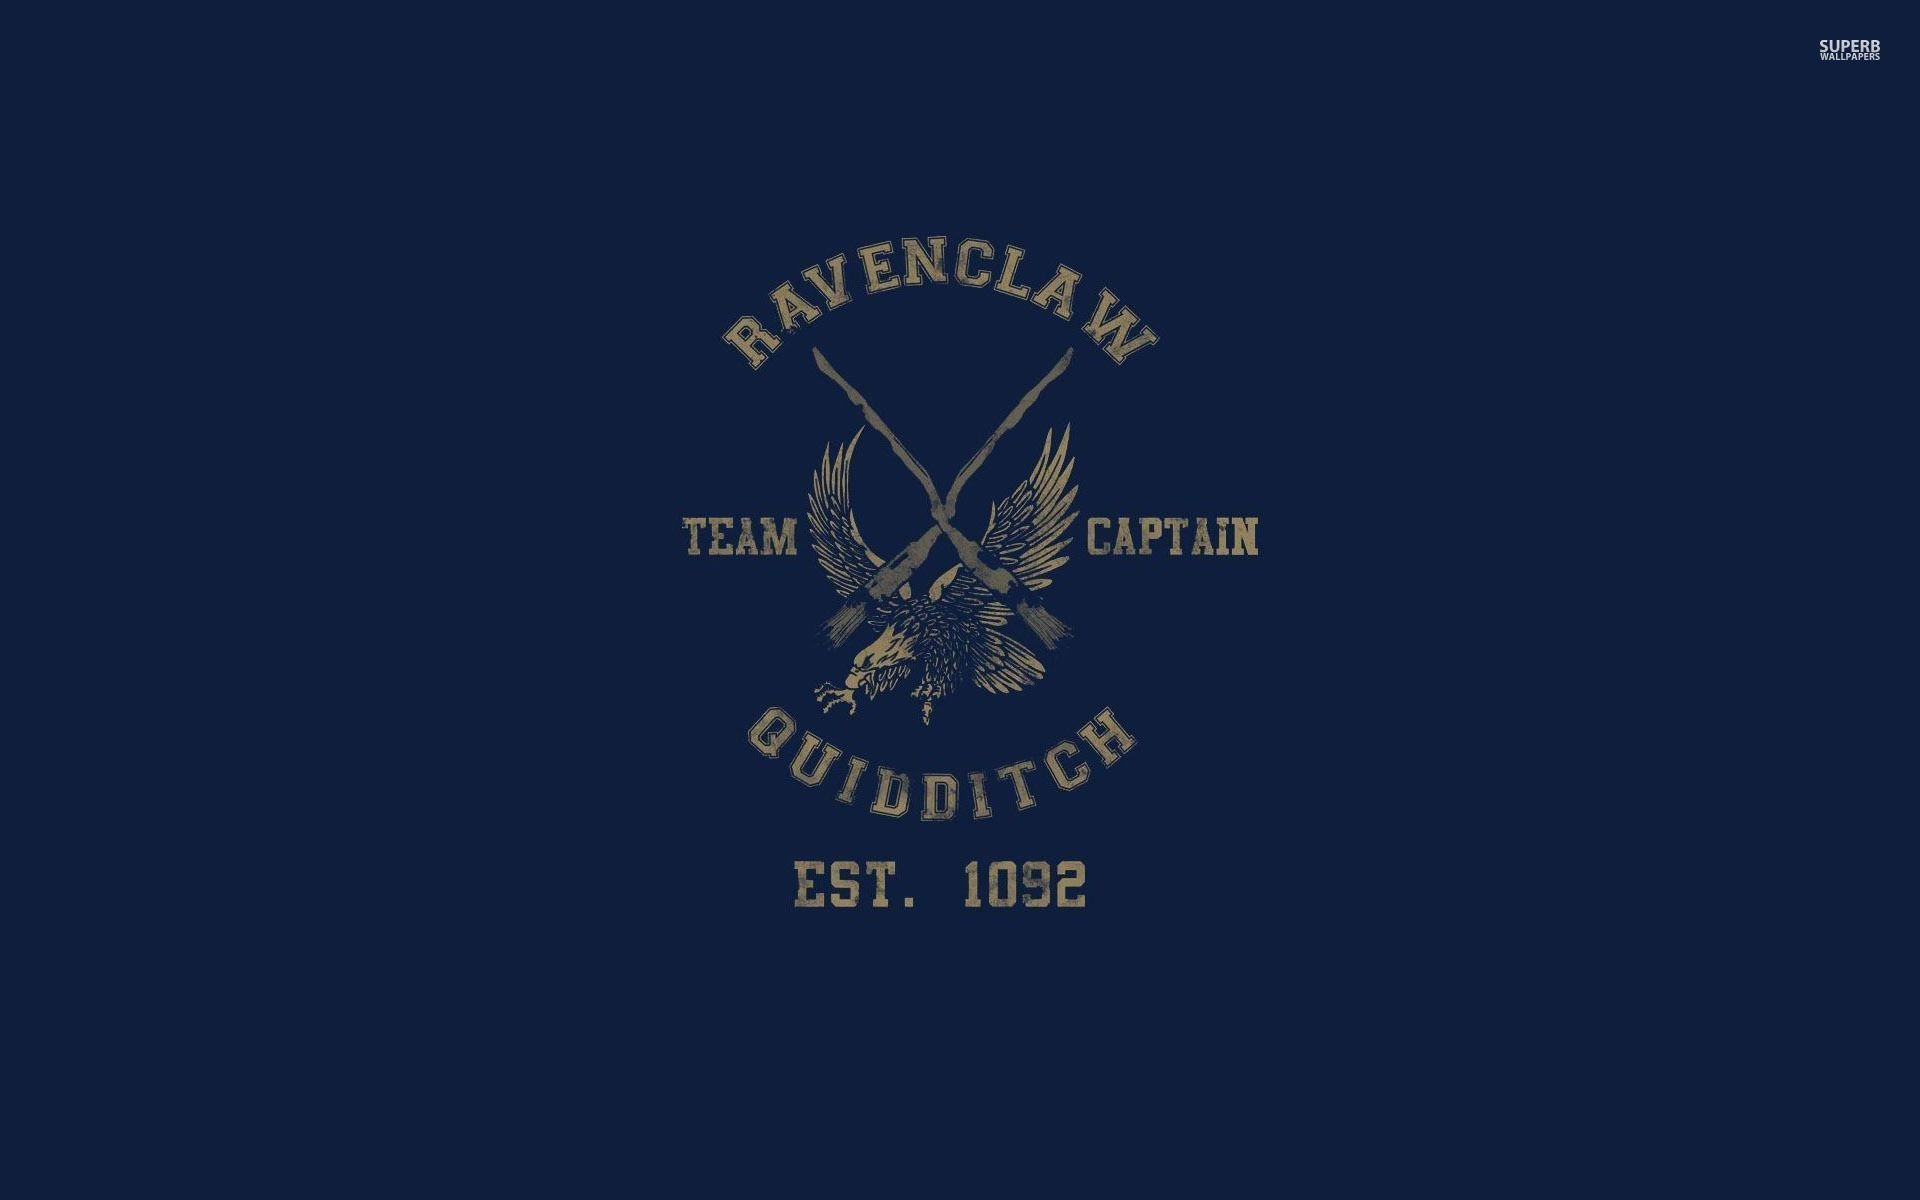 hogwarts ravenclaw wallpaper for mac - photo #4